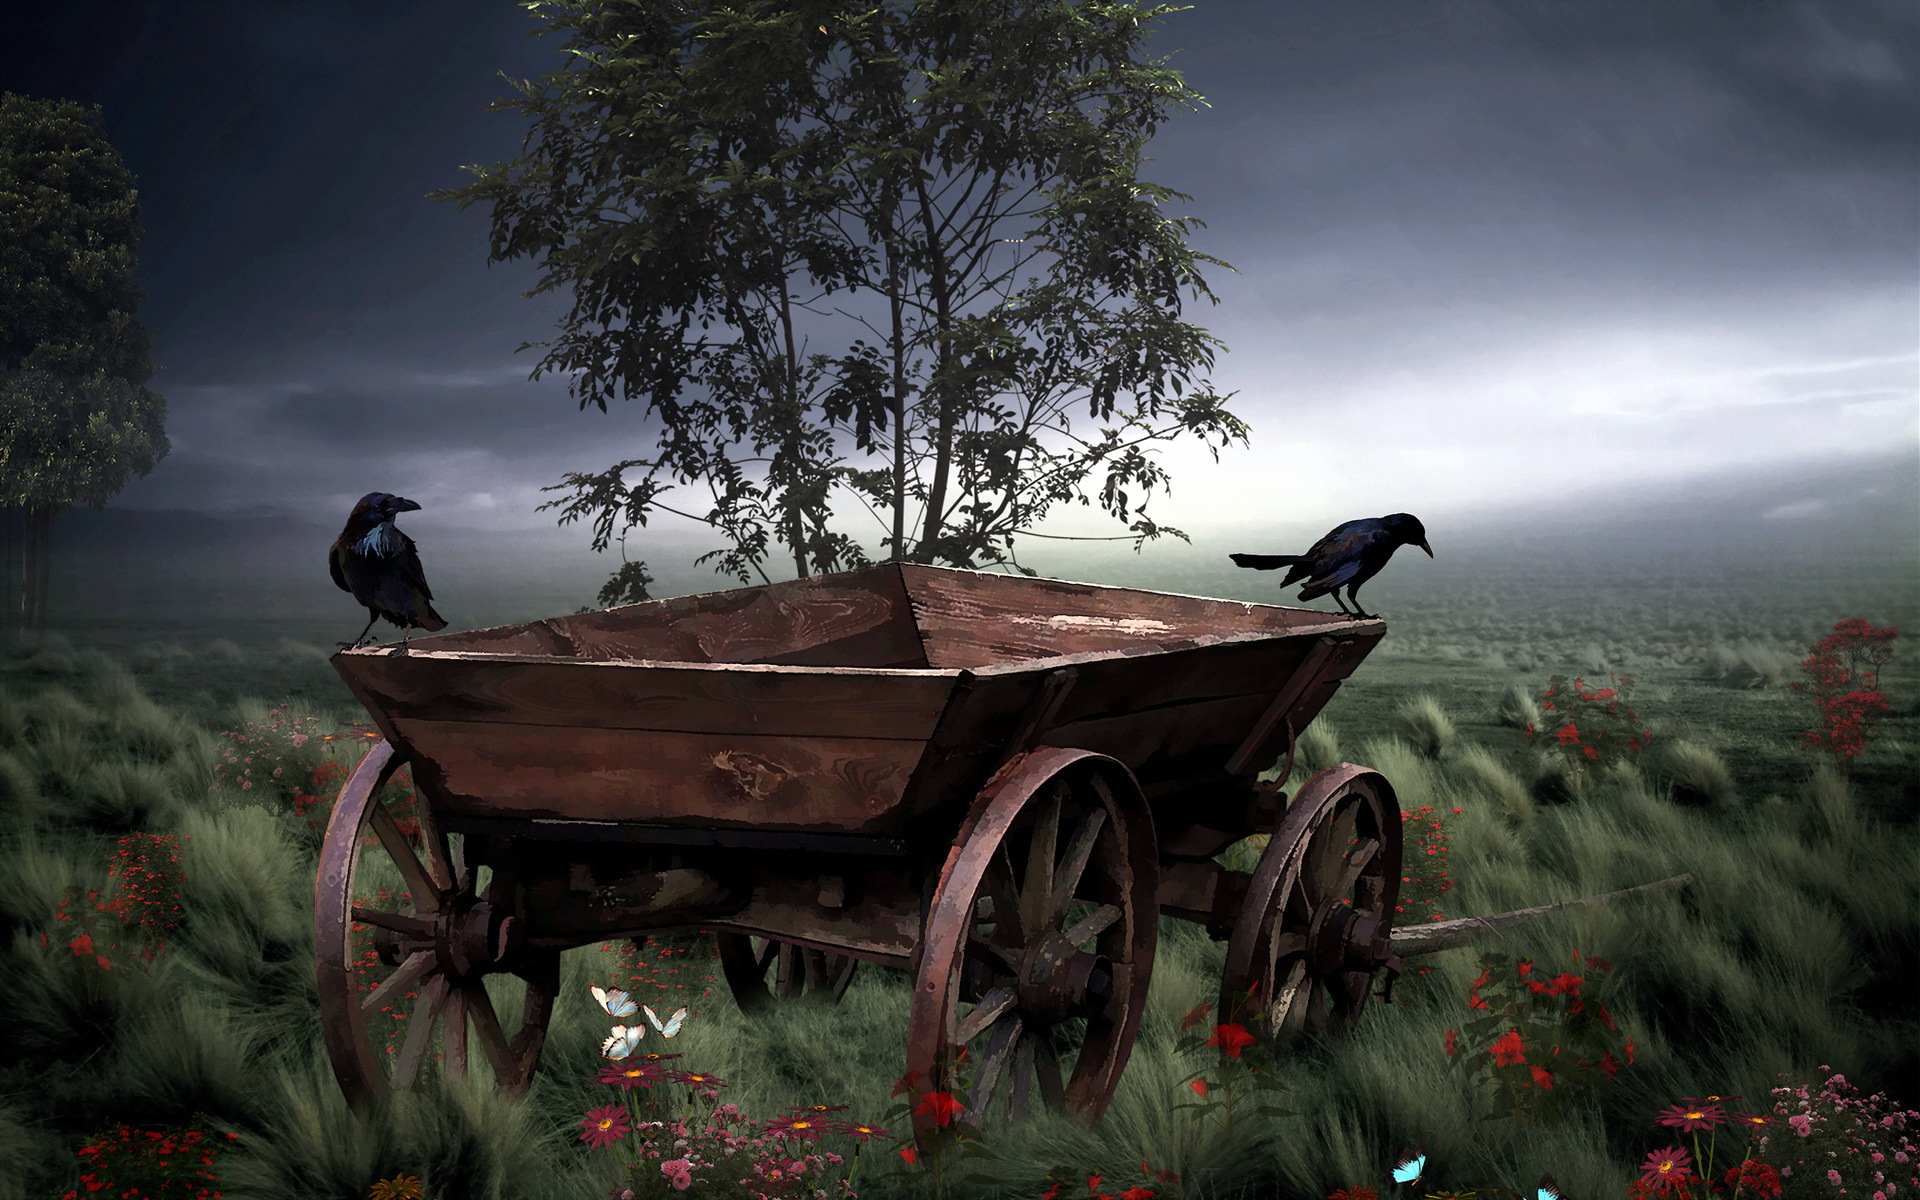 Vintage Car Hd Wallpapers For Pc Art Painting Vehicles Wagon Rustic Landscapes